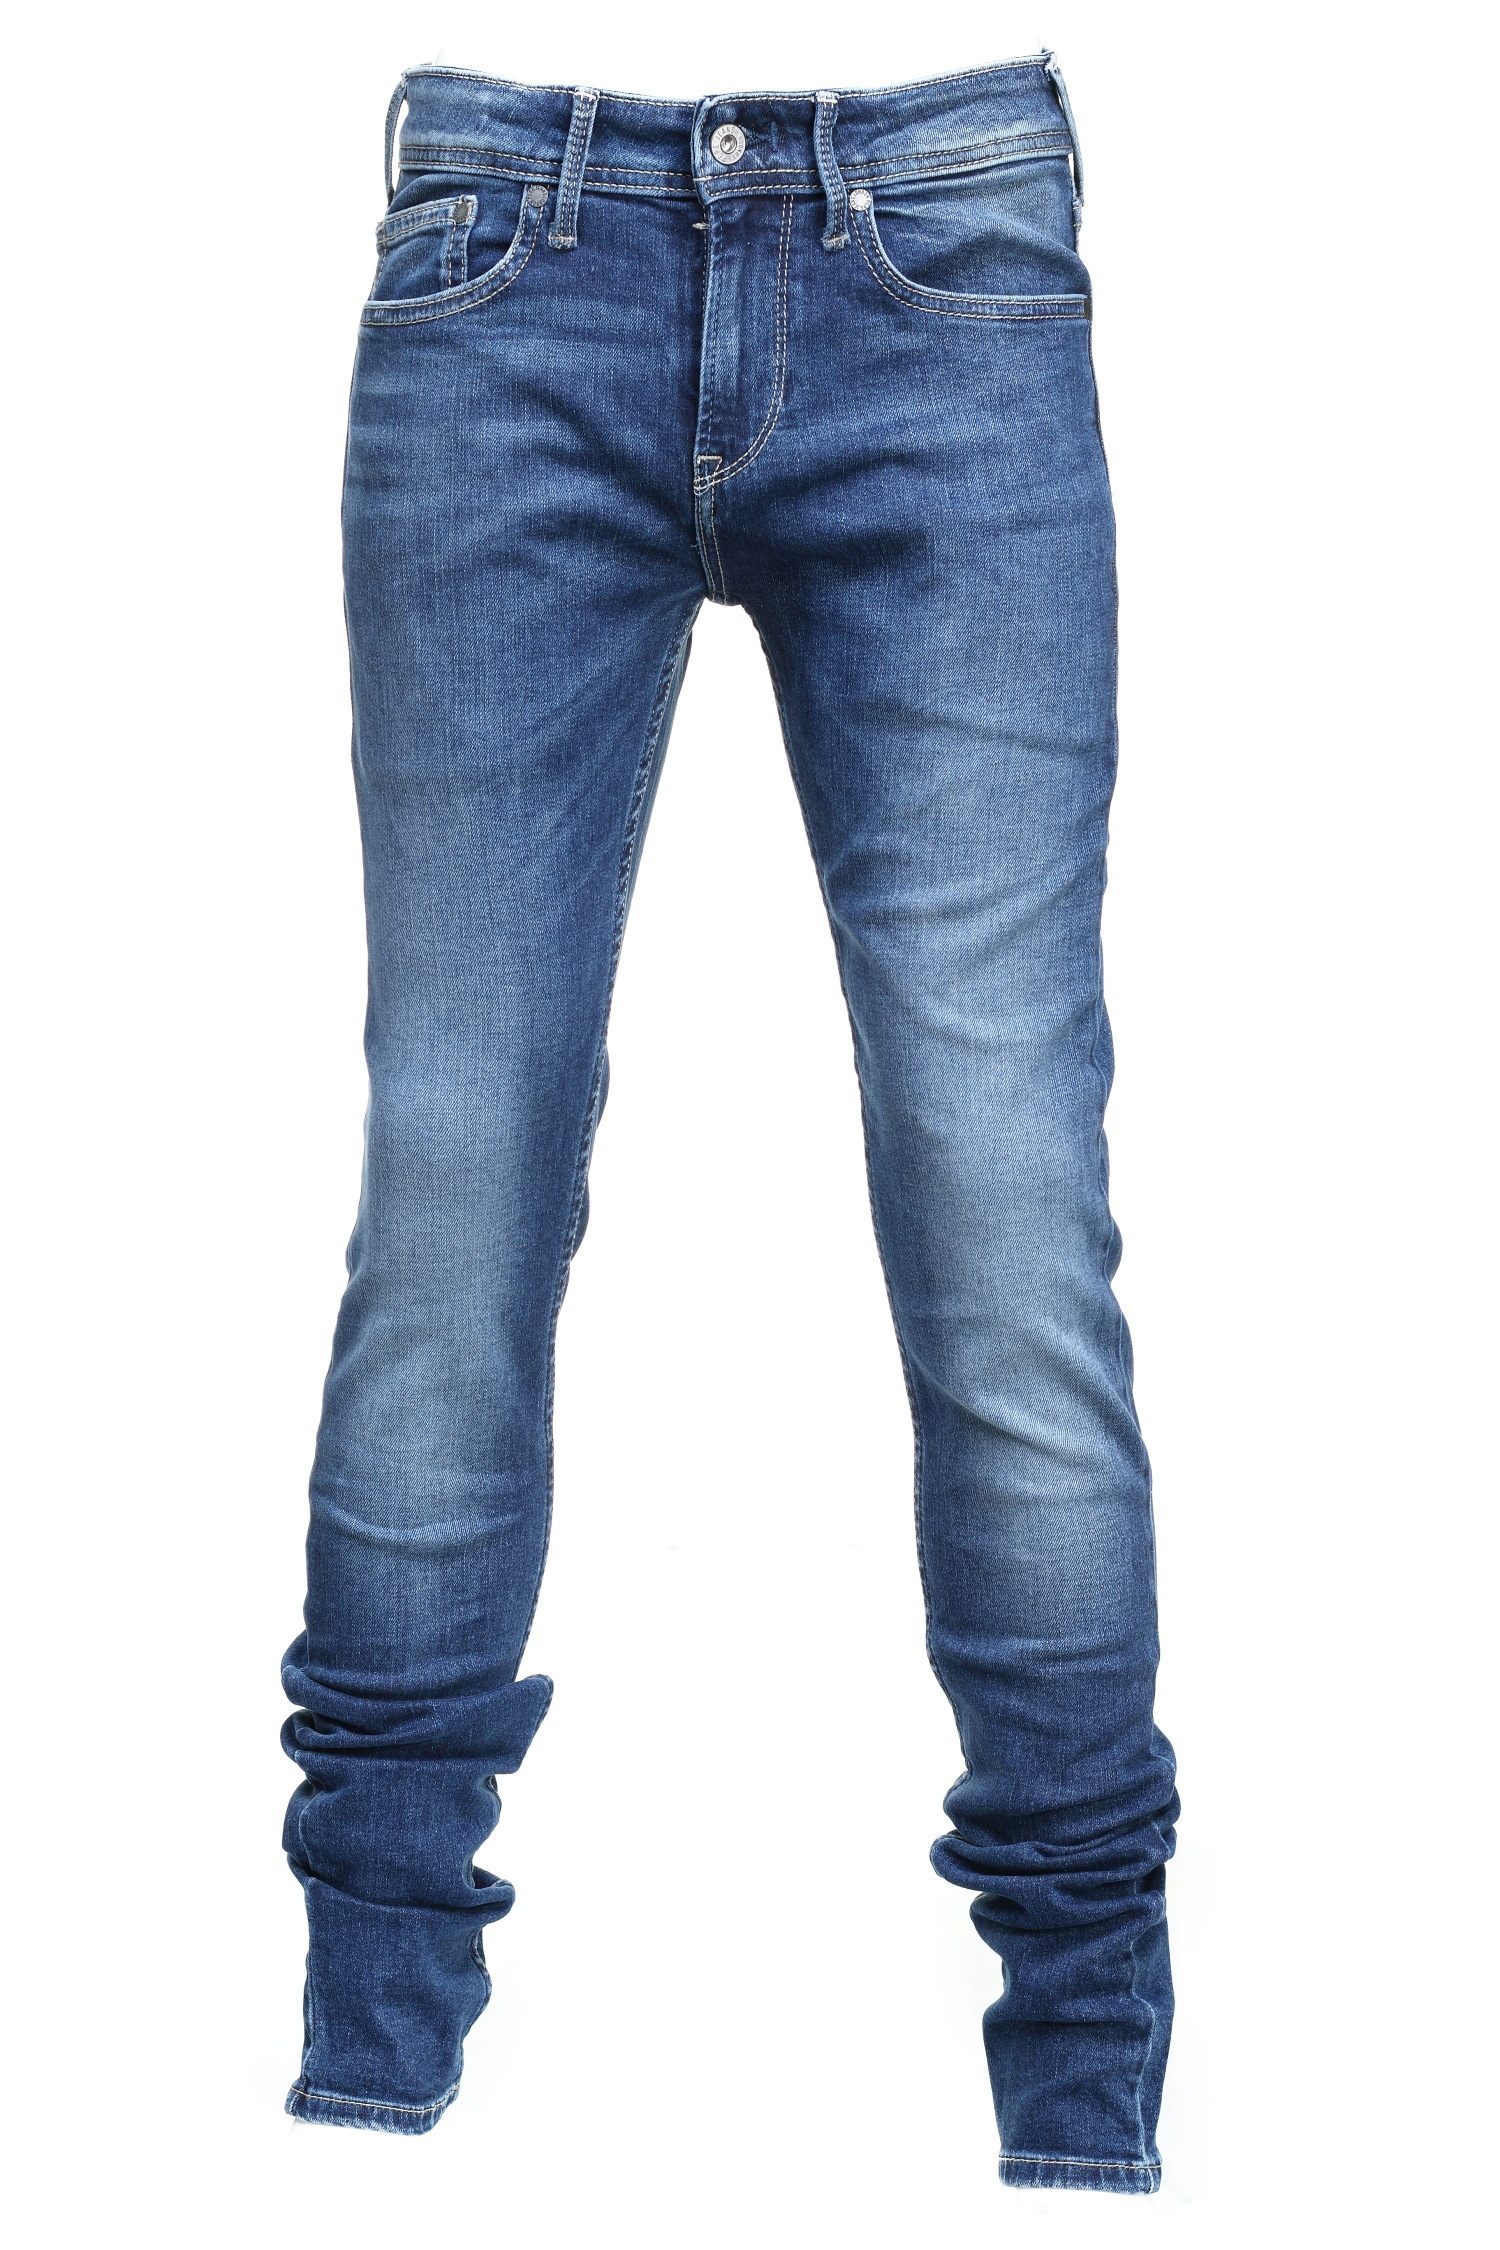 http://www.leadermode.com/154092/pepe-jeans-finly-pb200527gj2-000-denim.jpg